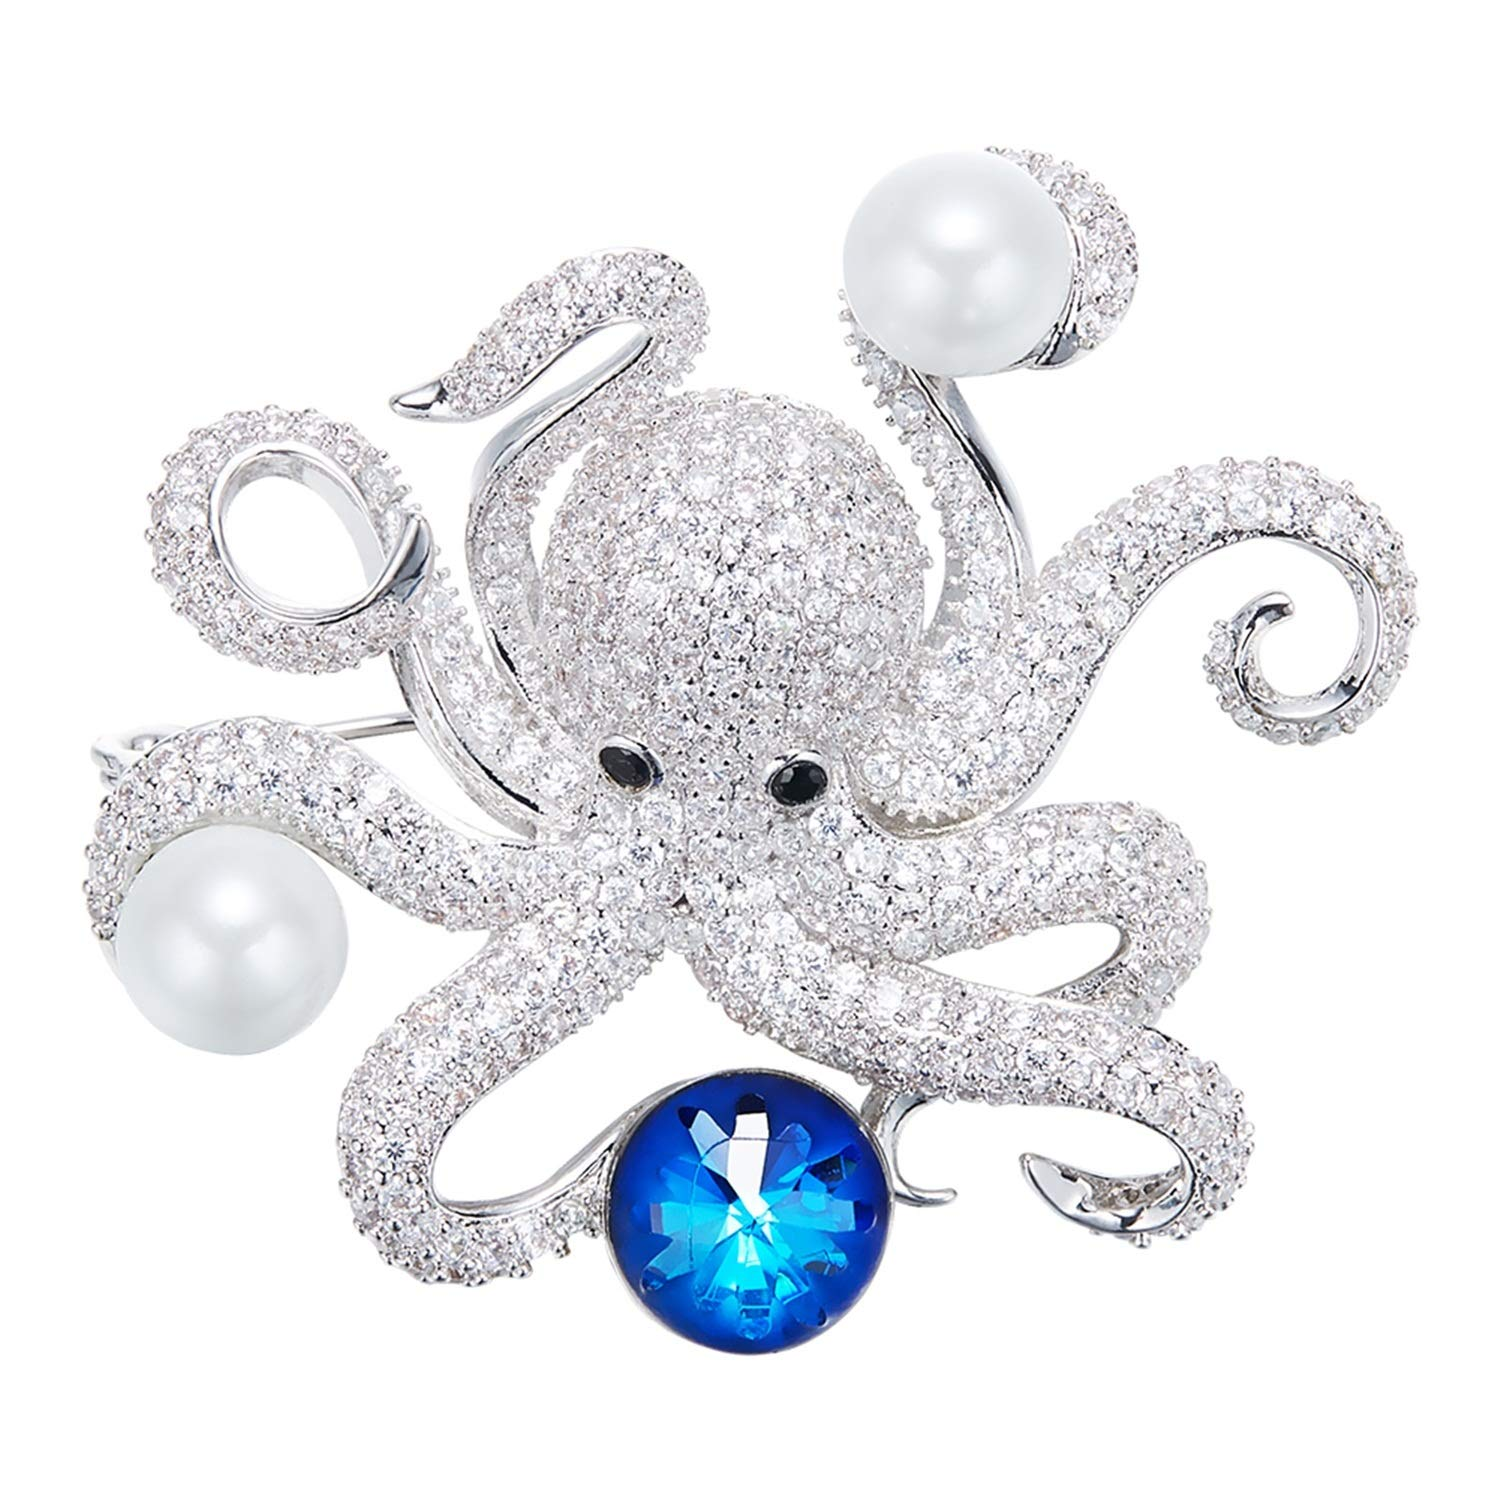 AMDXD Glittering Brooches Octopus Brooch Pin Unisex Brooch Needle Evening Dress Shirt with Blue Crystal